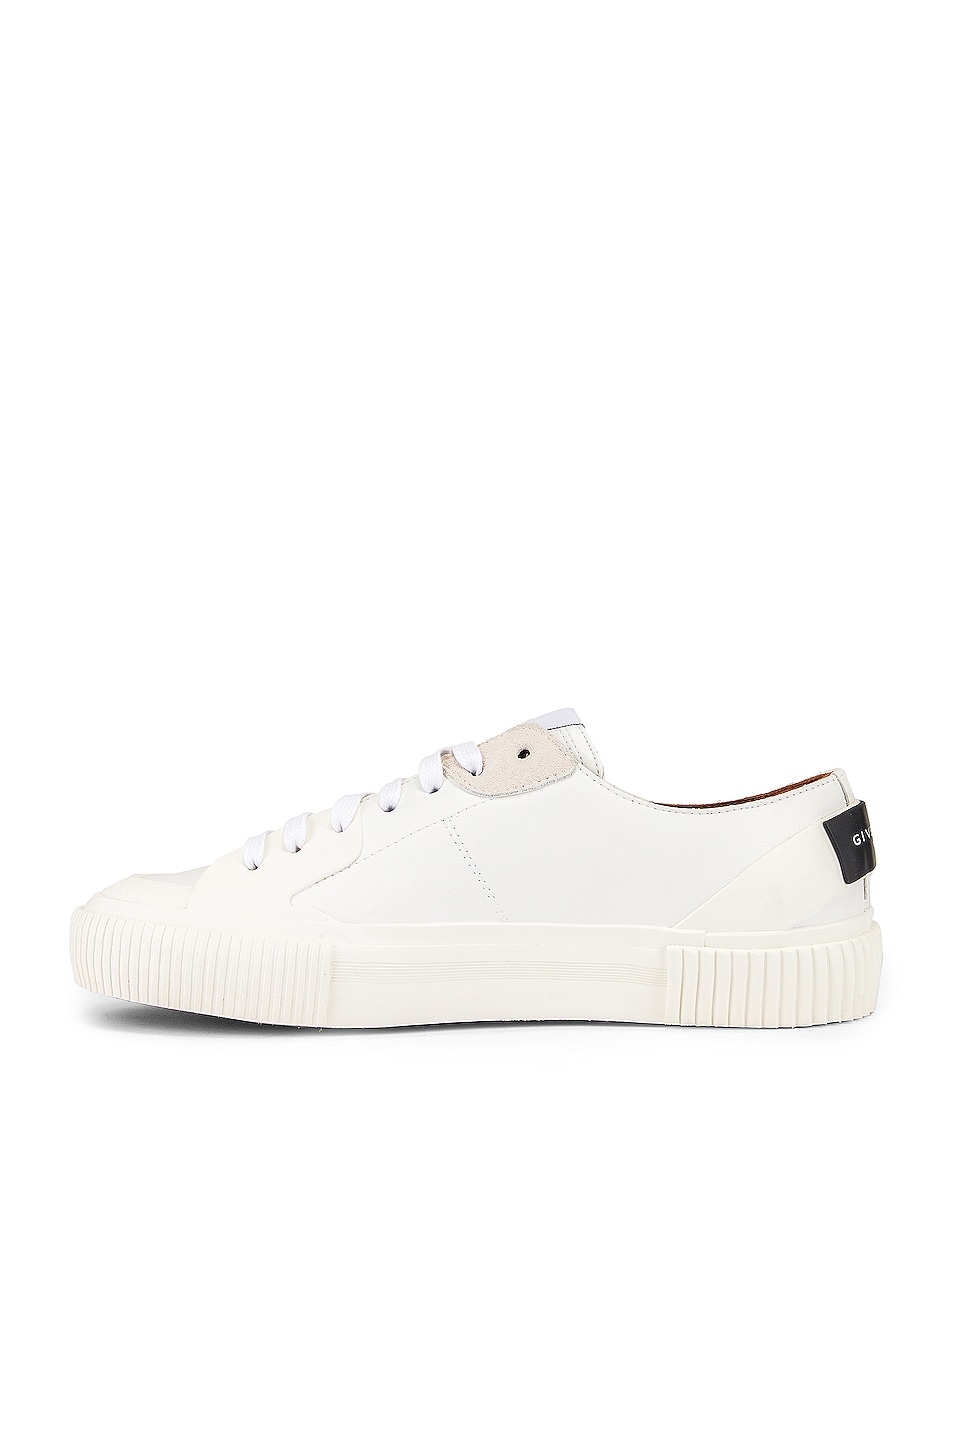 Image 5 of Givenchy Tennis Light Low Sneakers in White